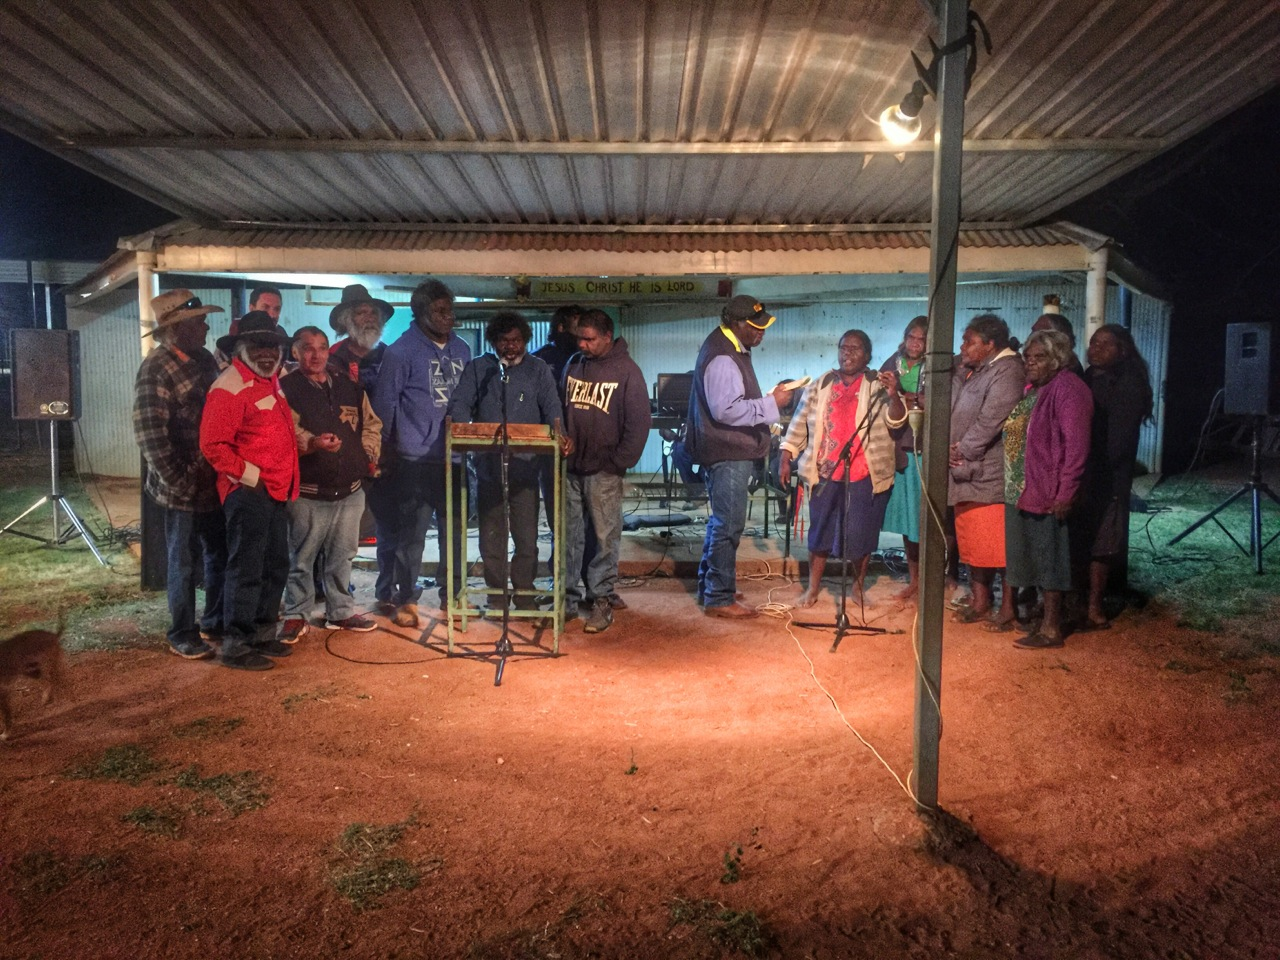 Pictured: The singalong at Lake Nash Church dedication went for 8 hours last Saturday.